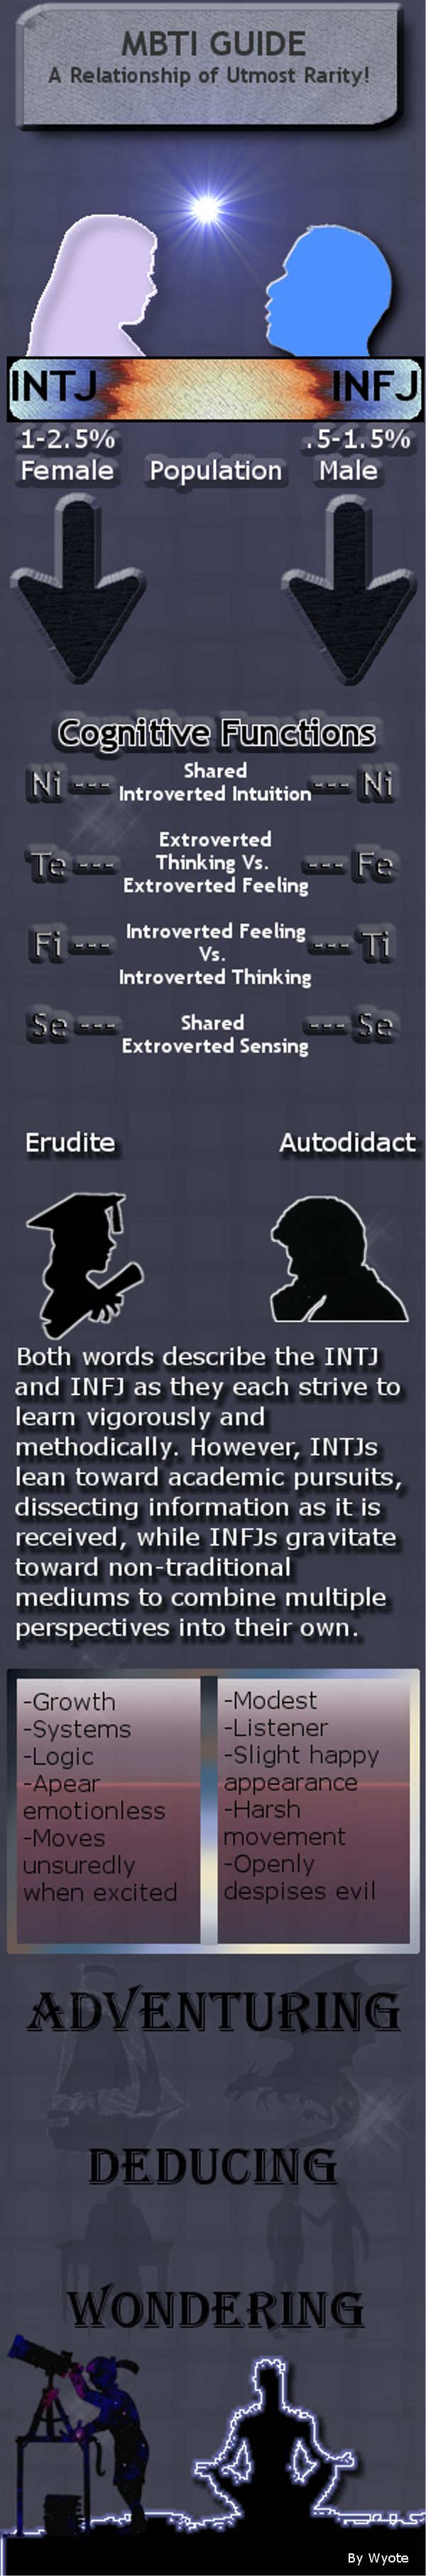 isfj and intp relationship with